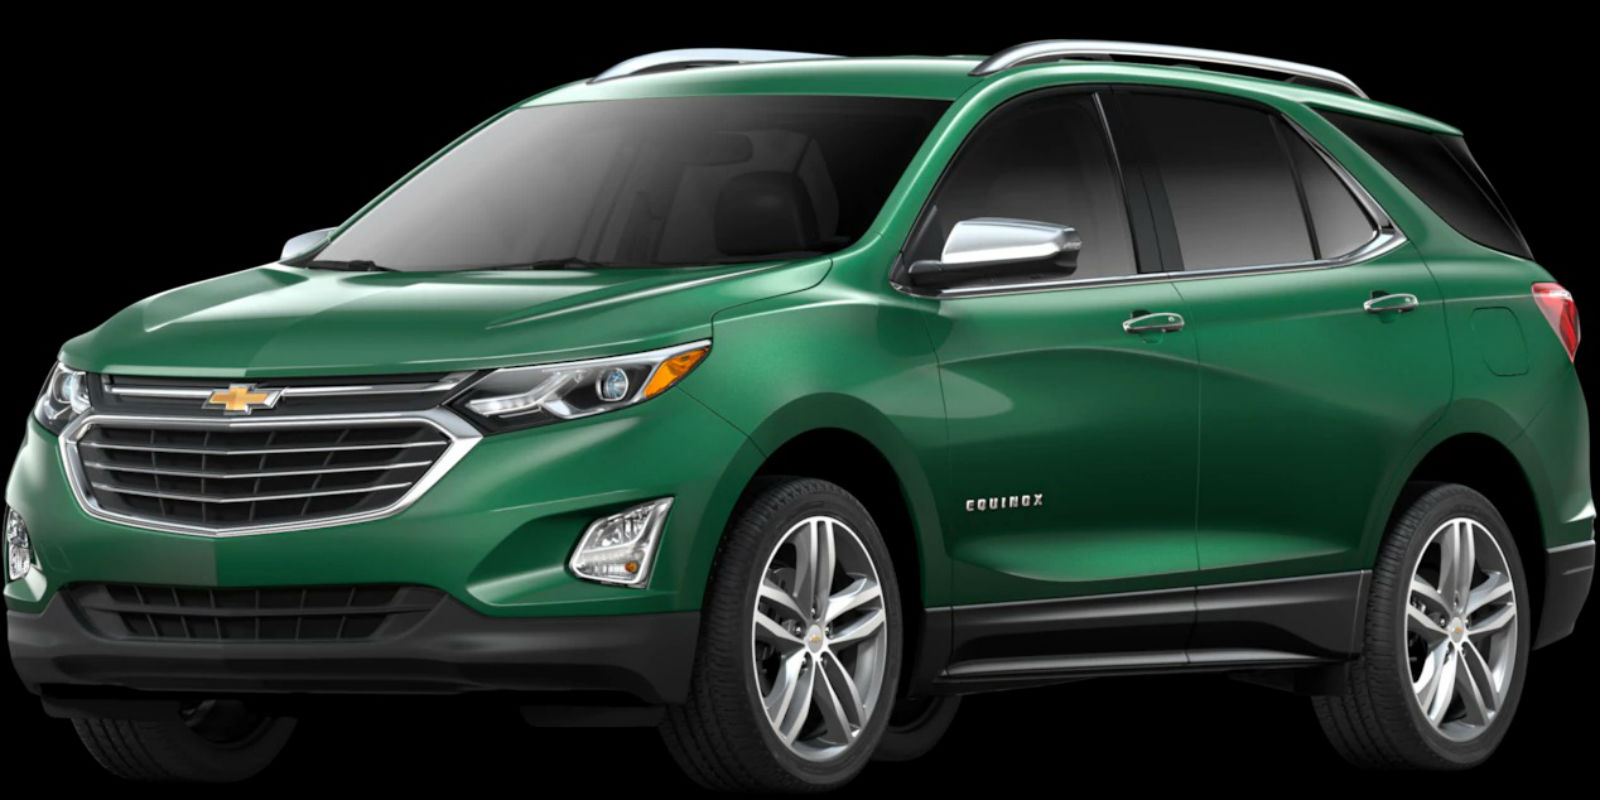 What are the Color Options for the 2018 Chevy Equinox?